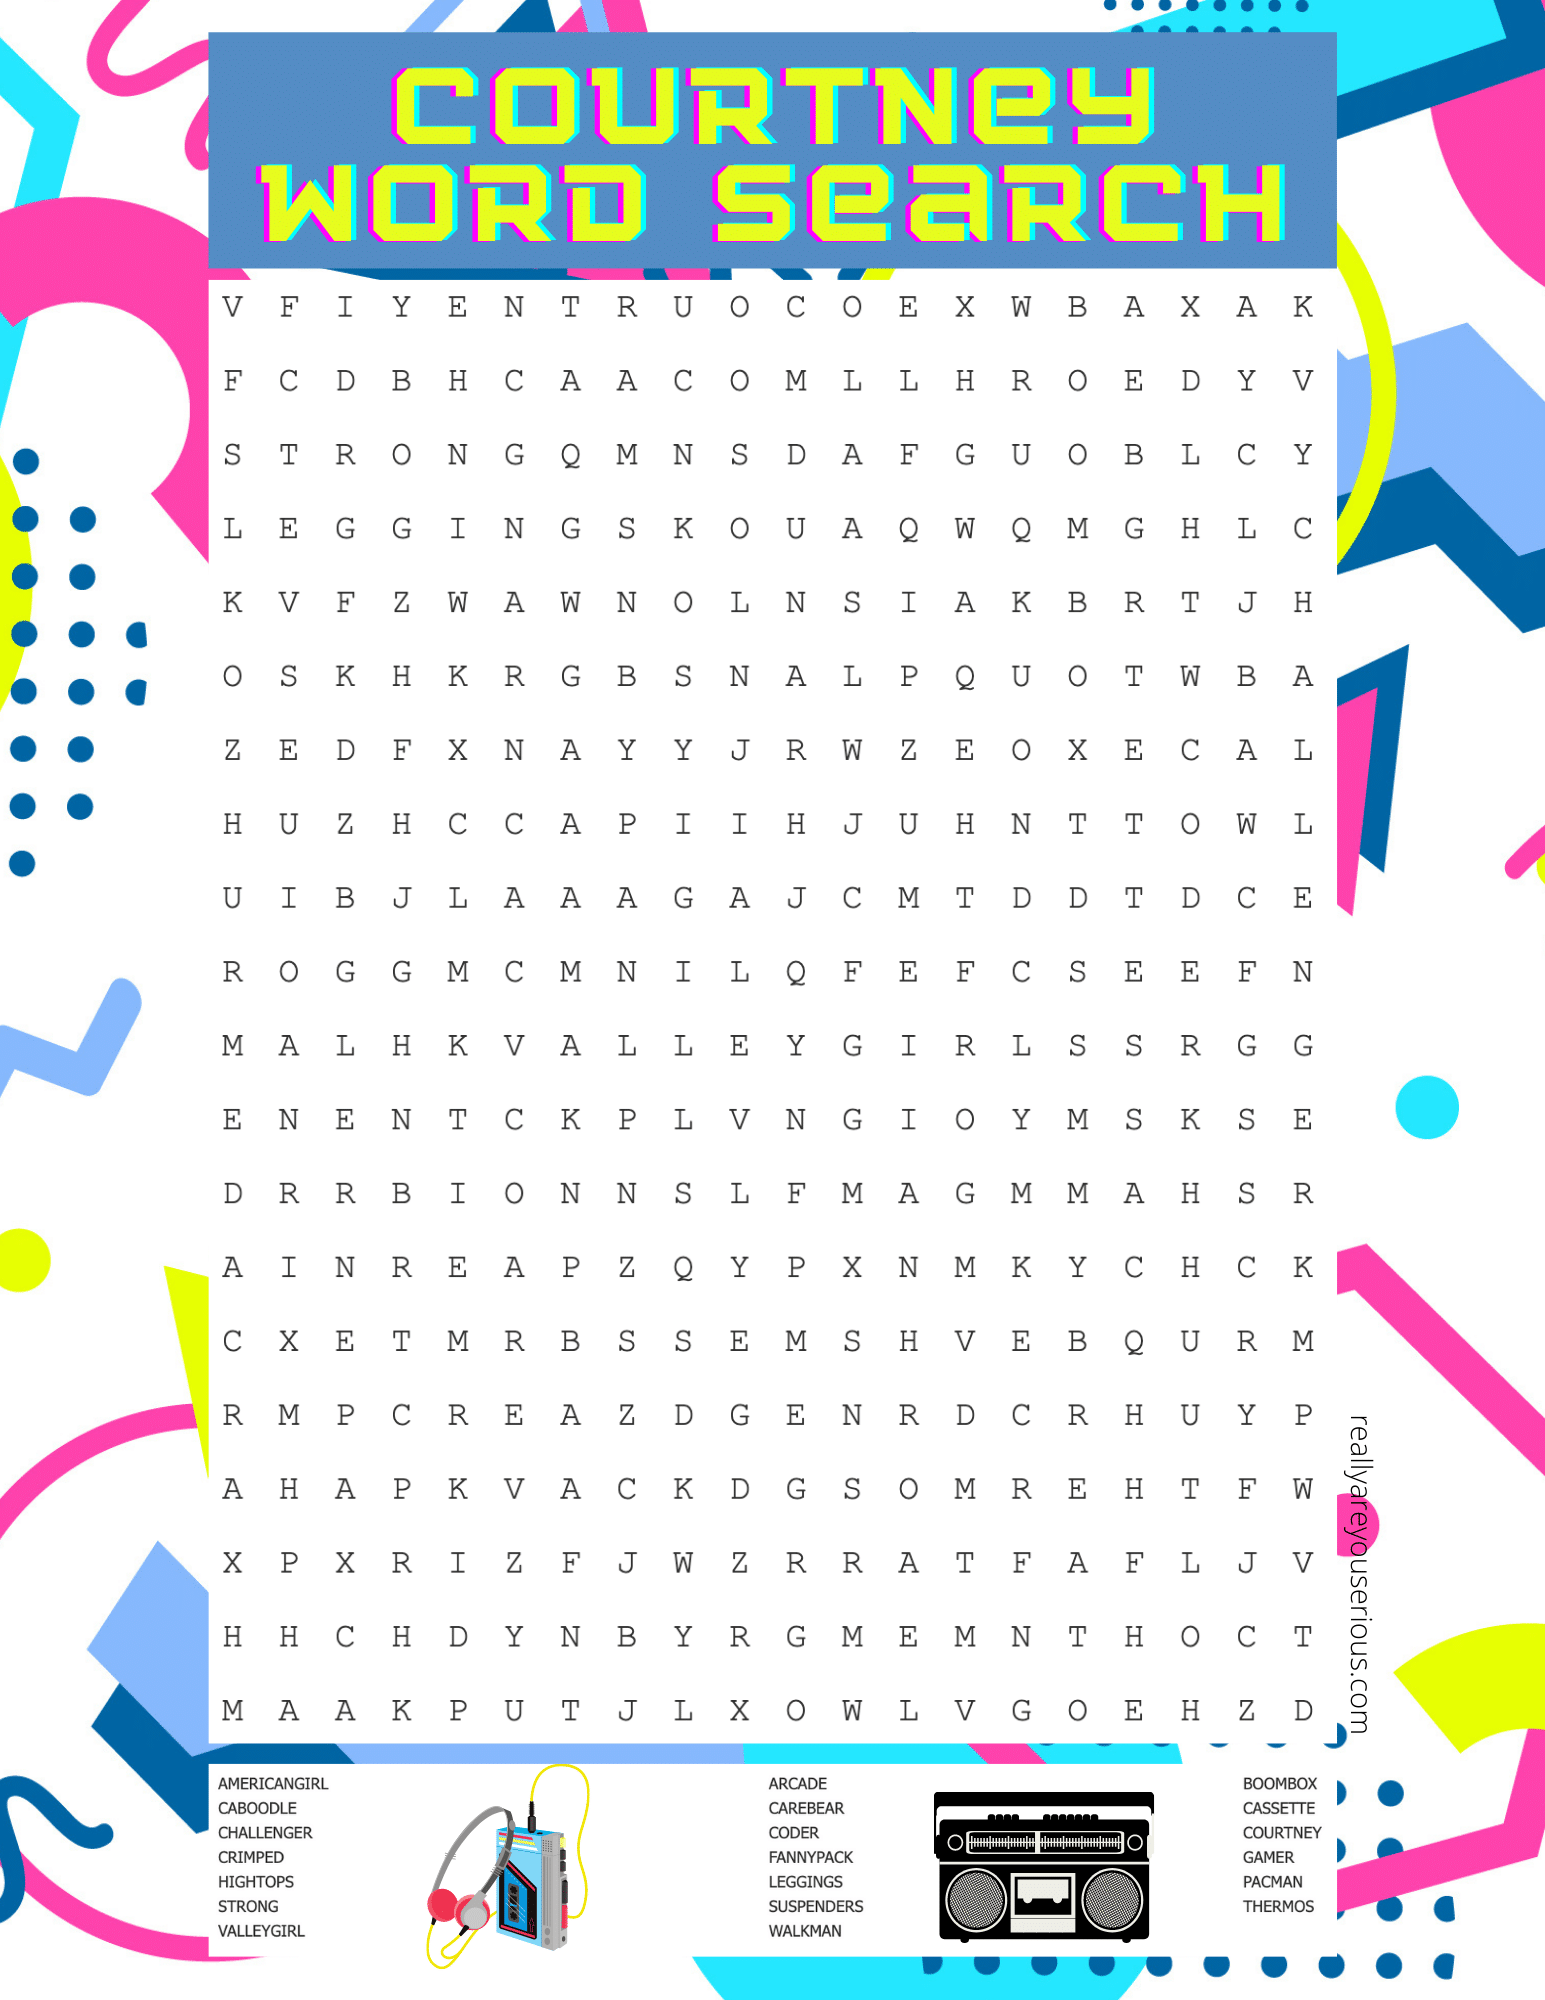 courtney american girl word search